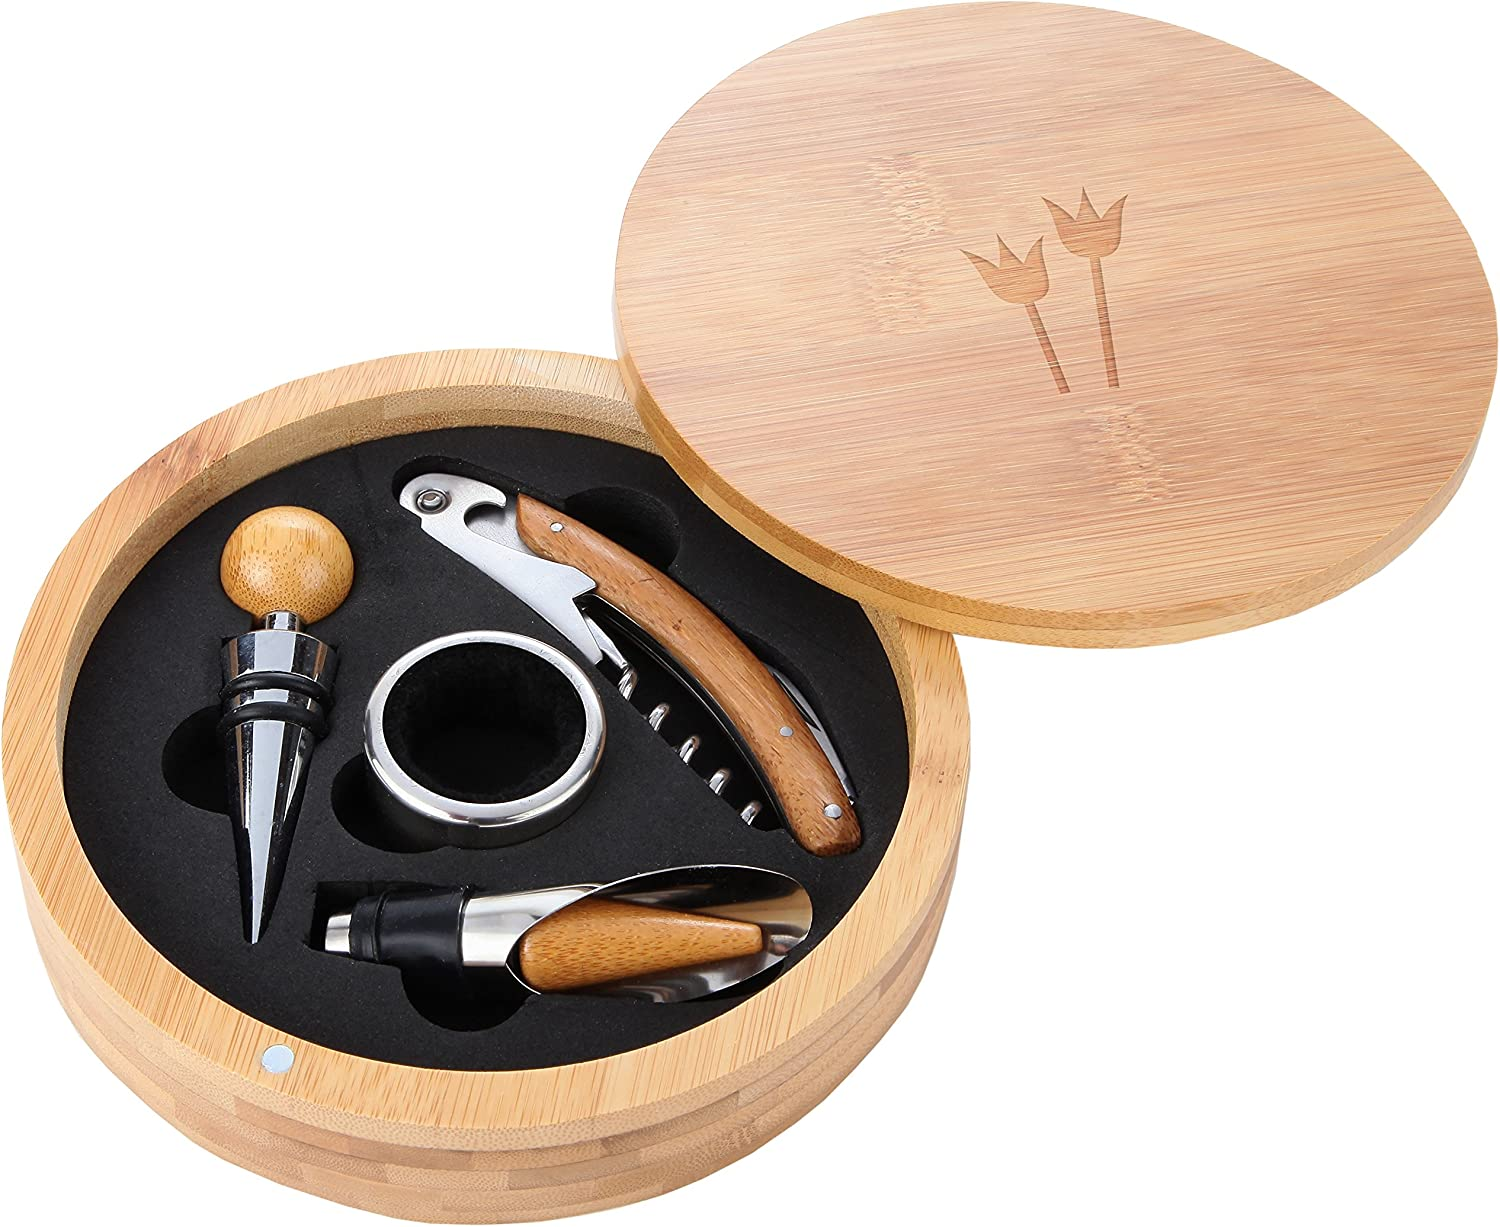 Quality inspection Tulips Wooden Austin Mall Accessories Company Wine - Tool Set Portable